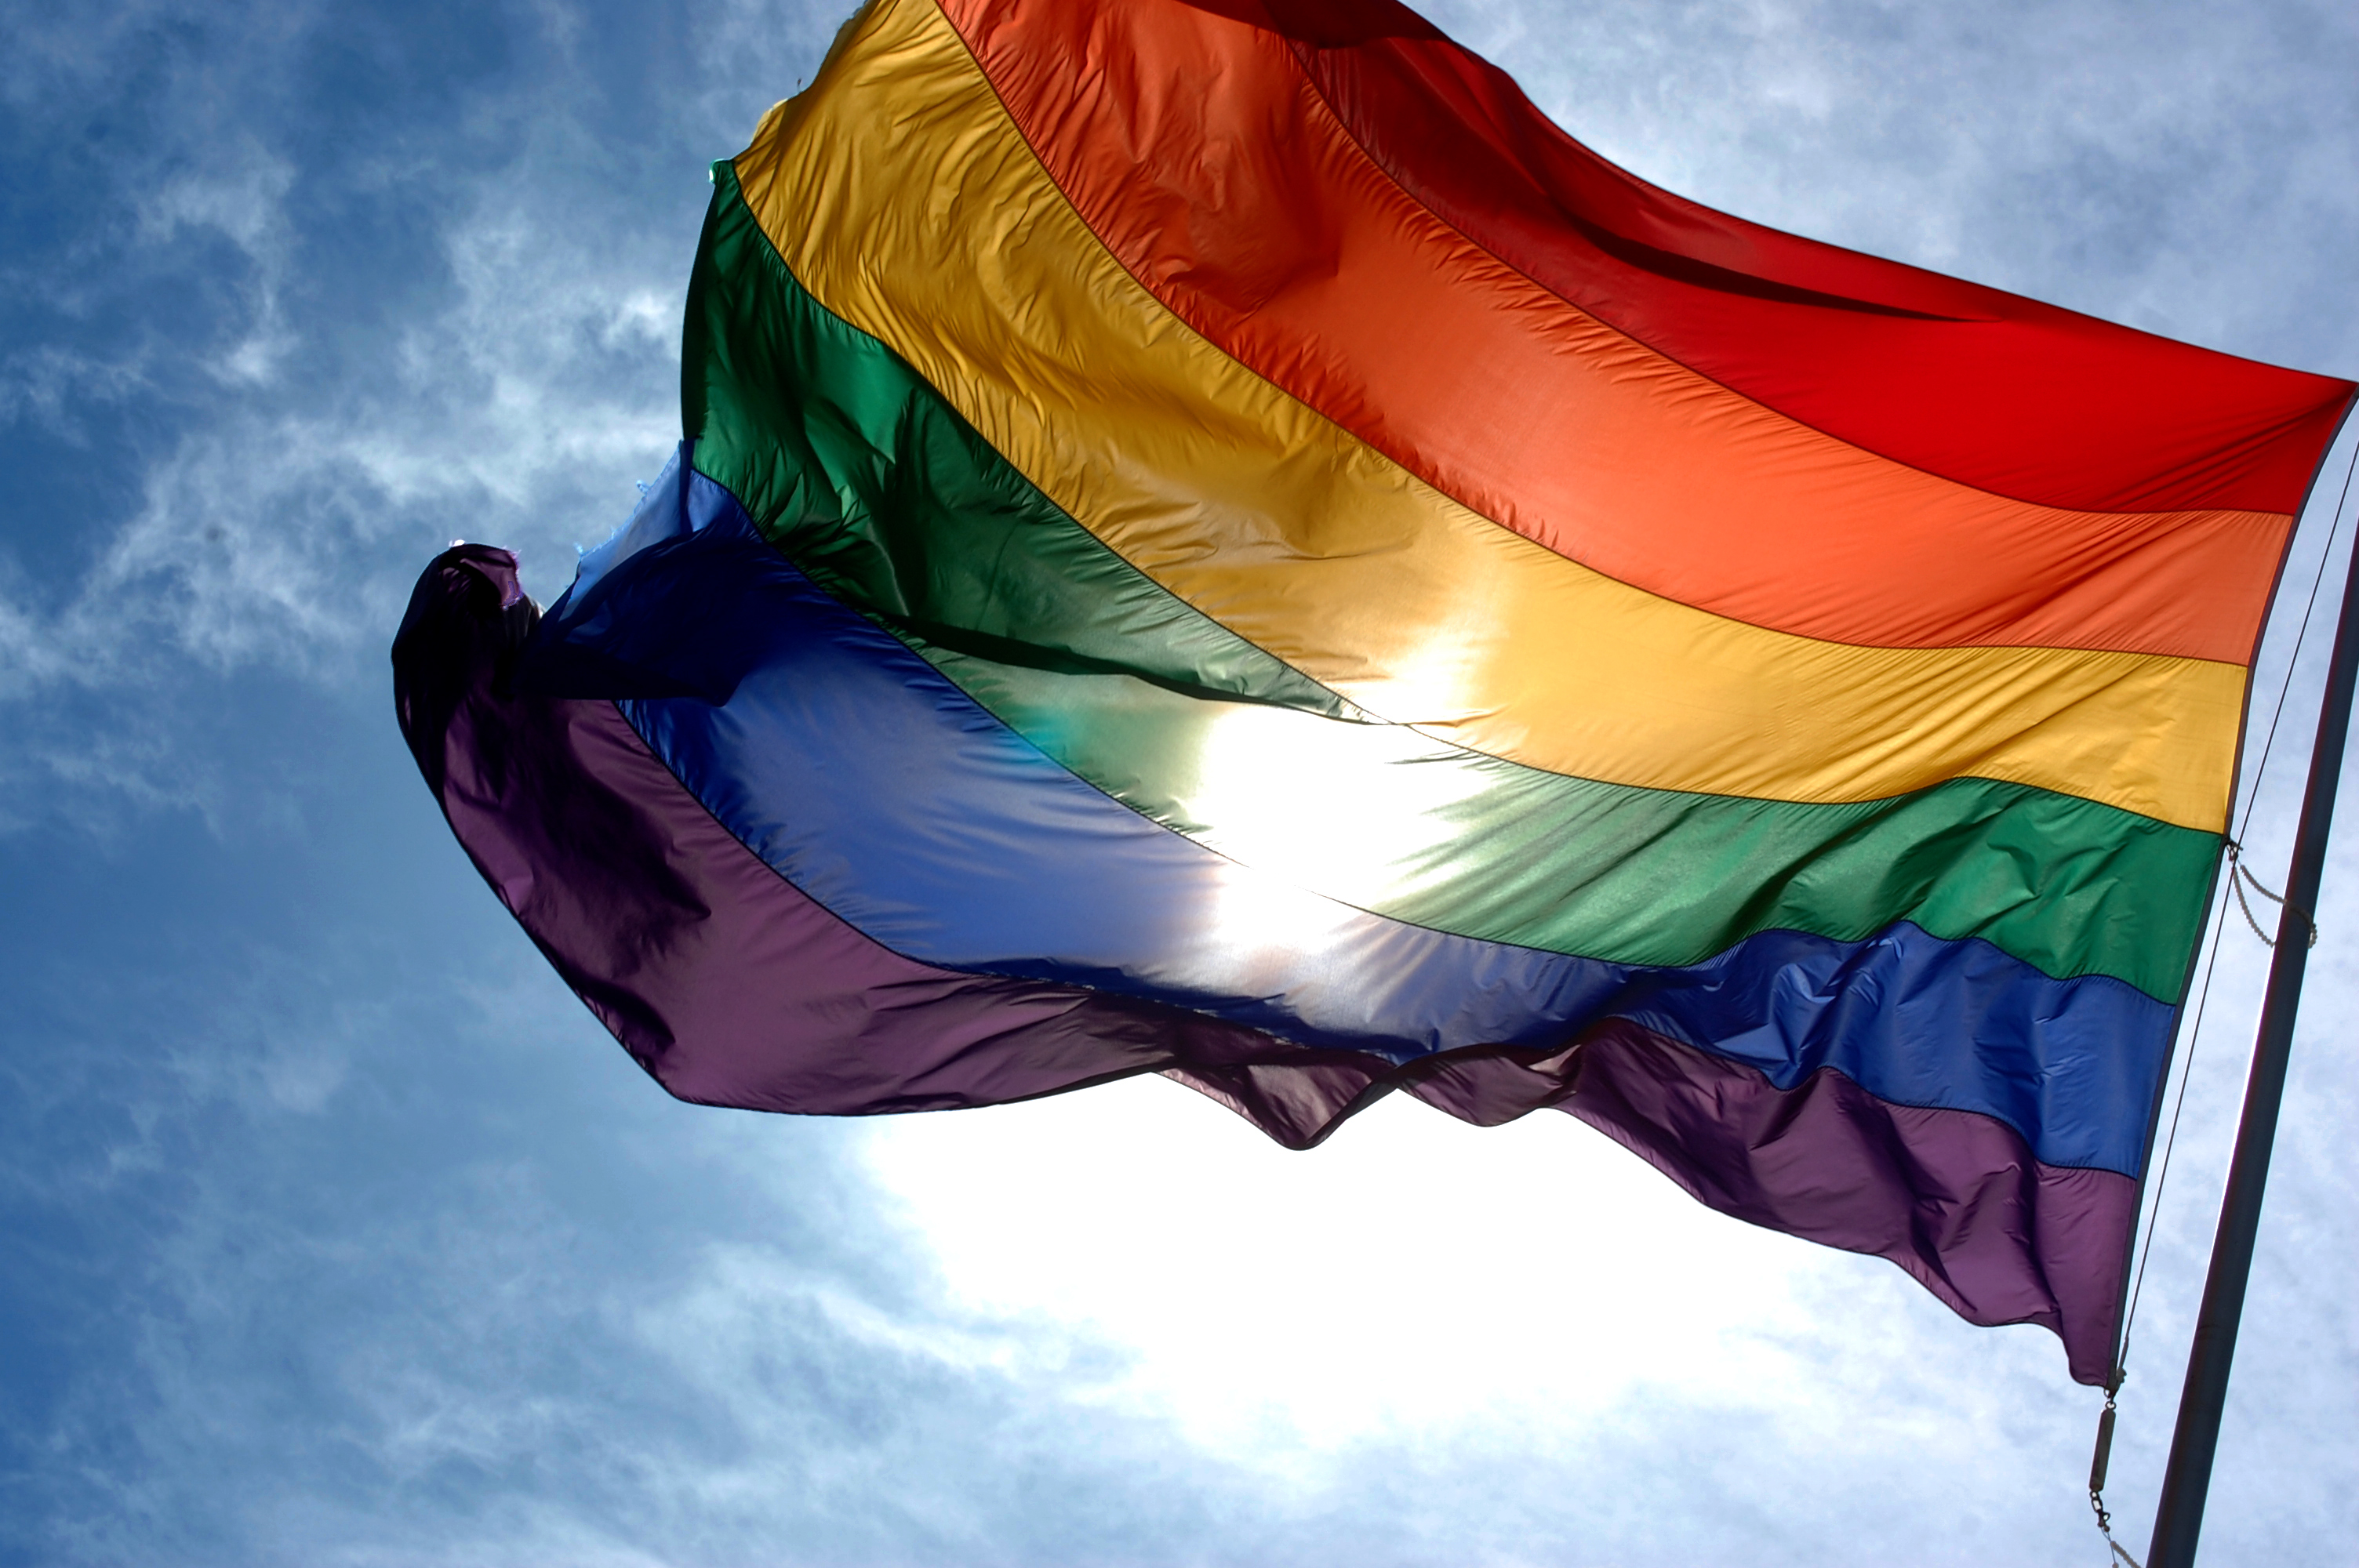 Pride-Rainbow-Flag-Gay-LBGTQ-.jpg